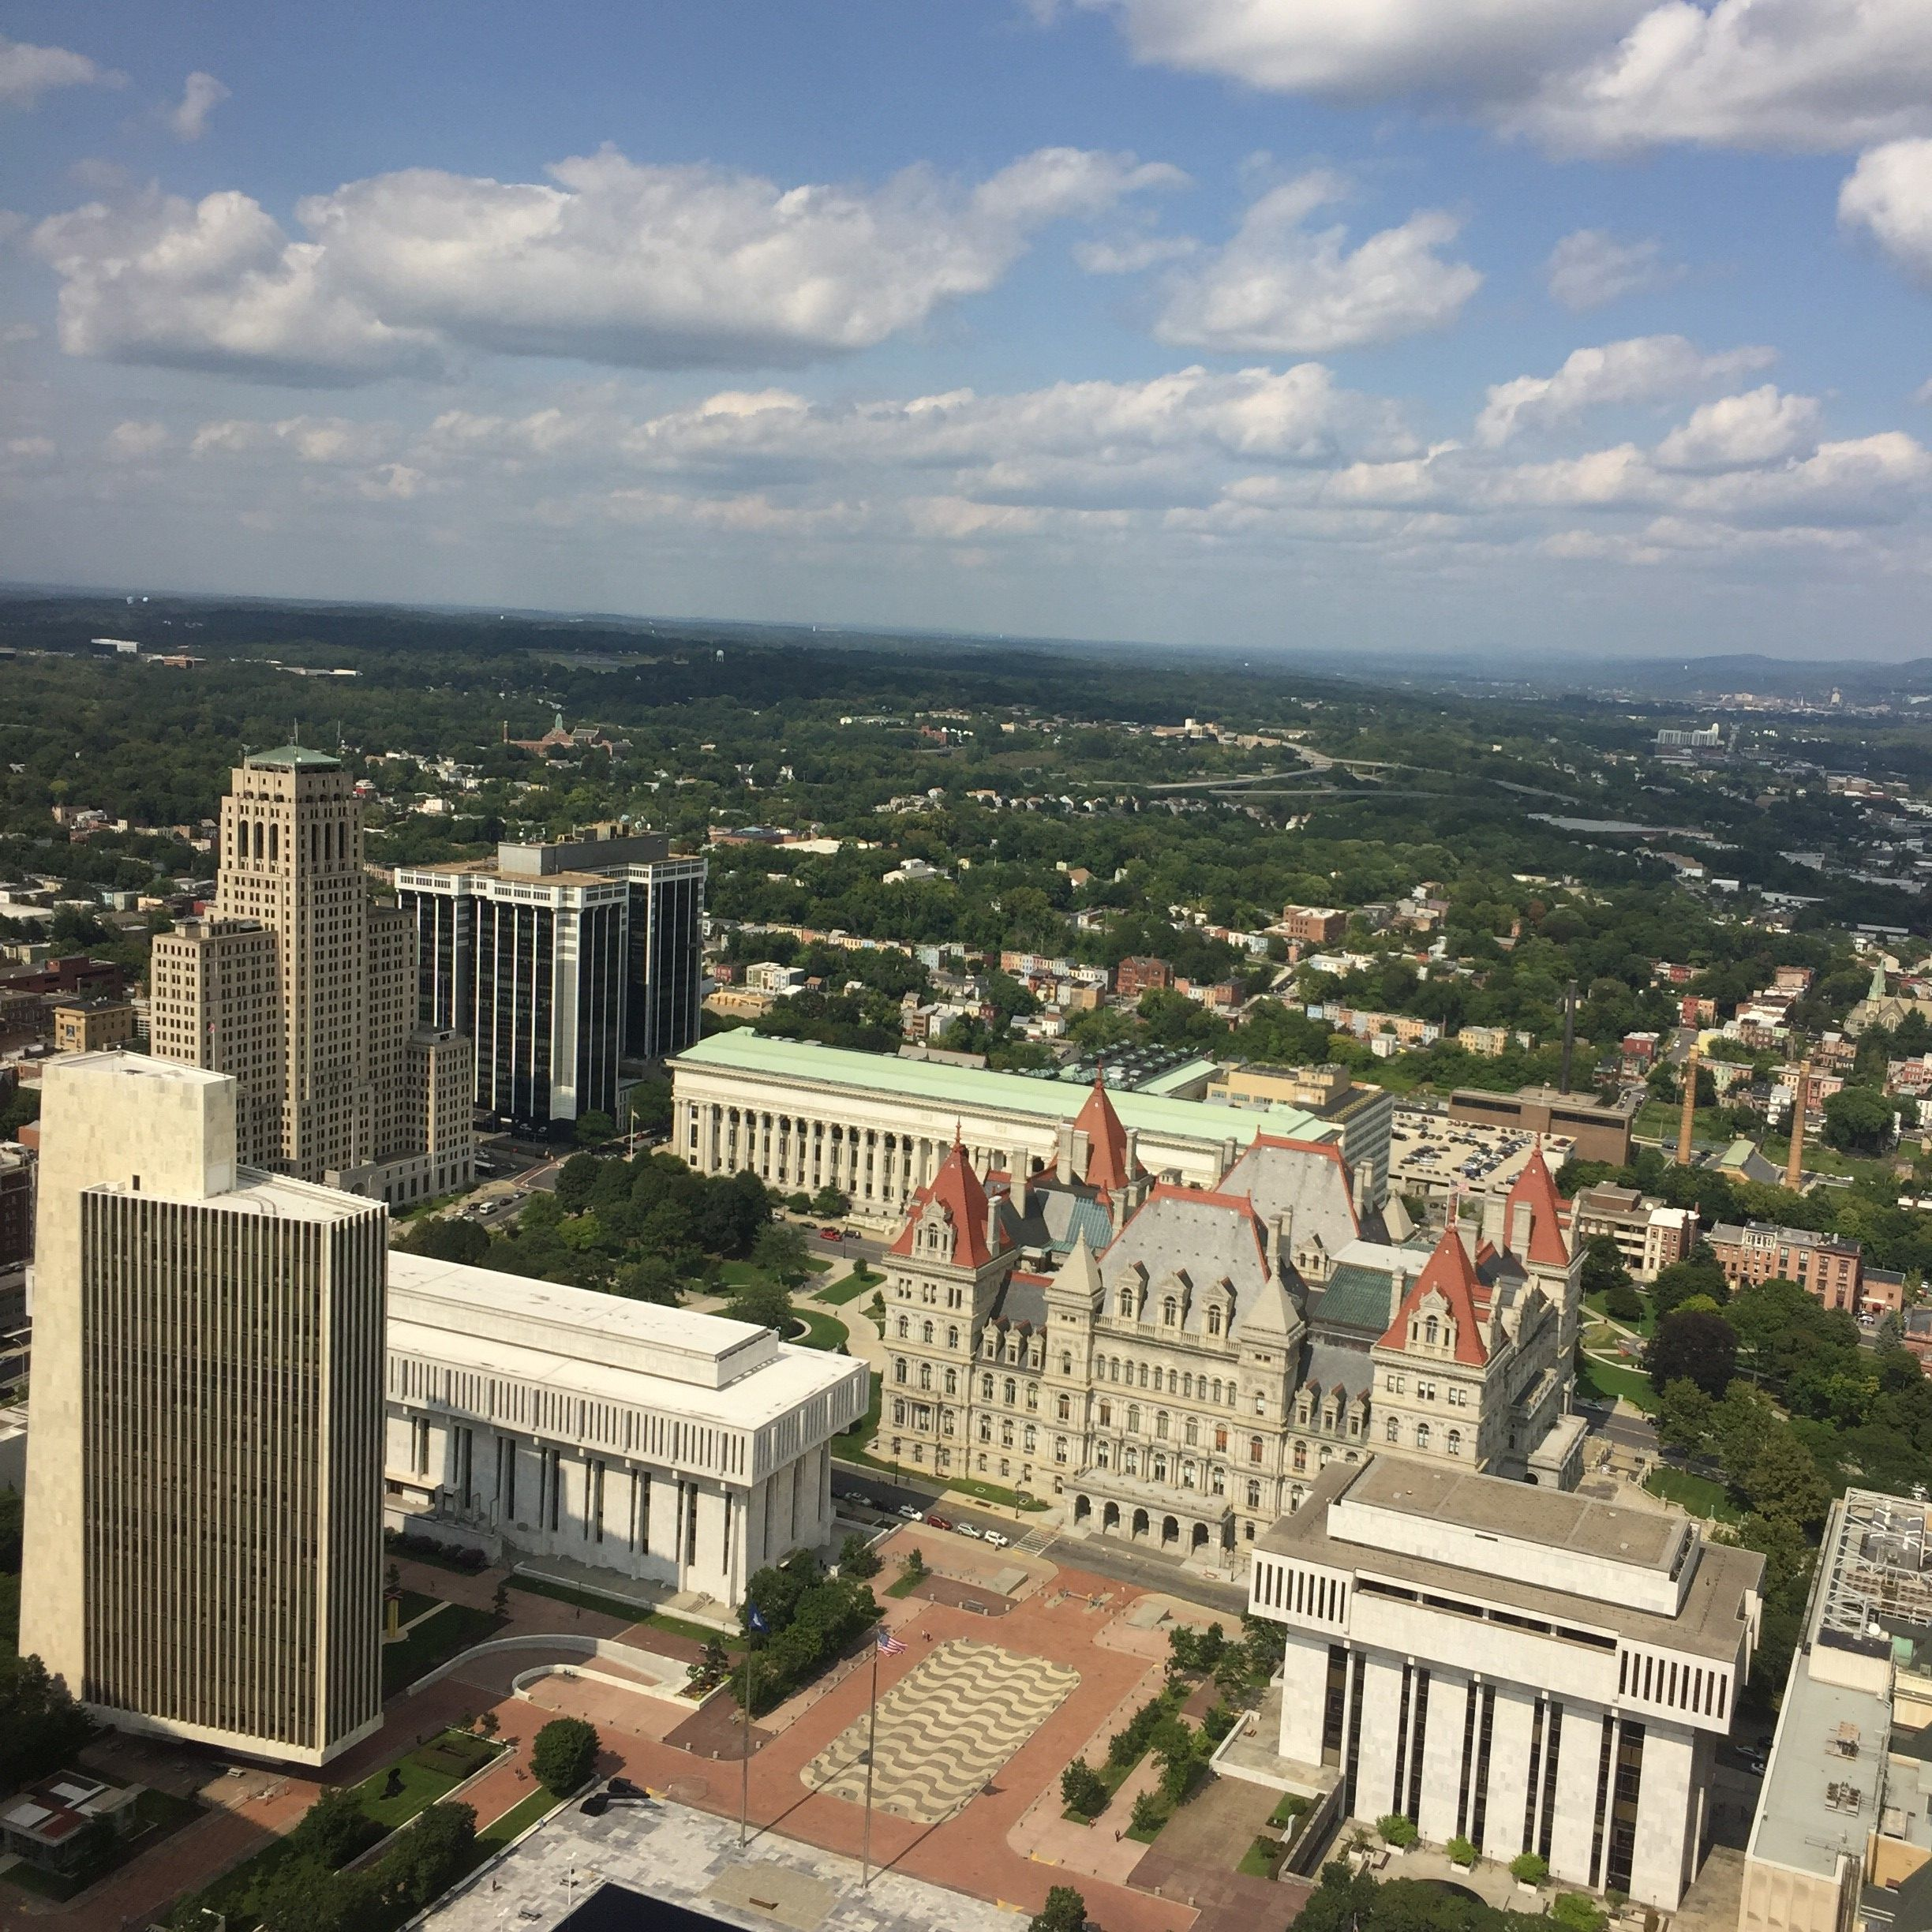 Visit The Corning Tower In Albany New York For Skyline Views New York Hotels Albany New York Skyline View